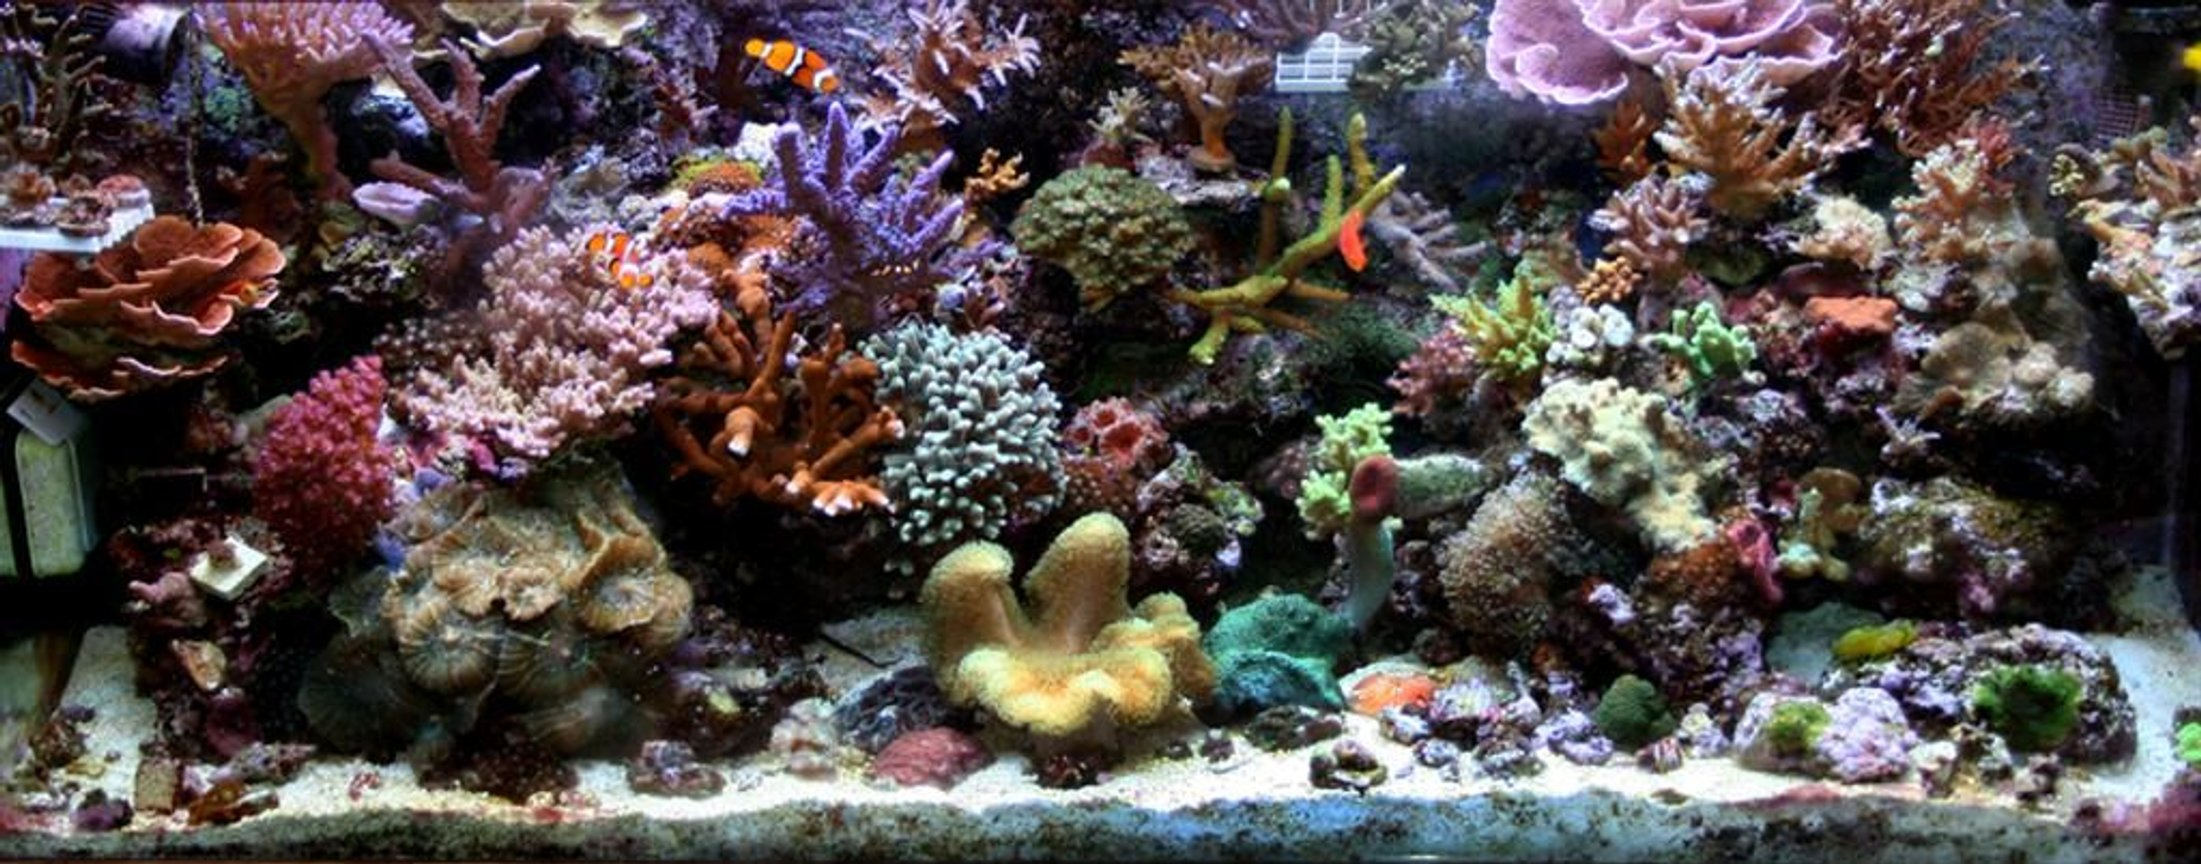 210 gallons reef tank (mostly live coral and fish) - Full tank shot of 75gal tank. may 08